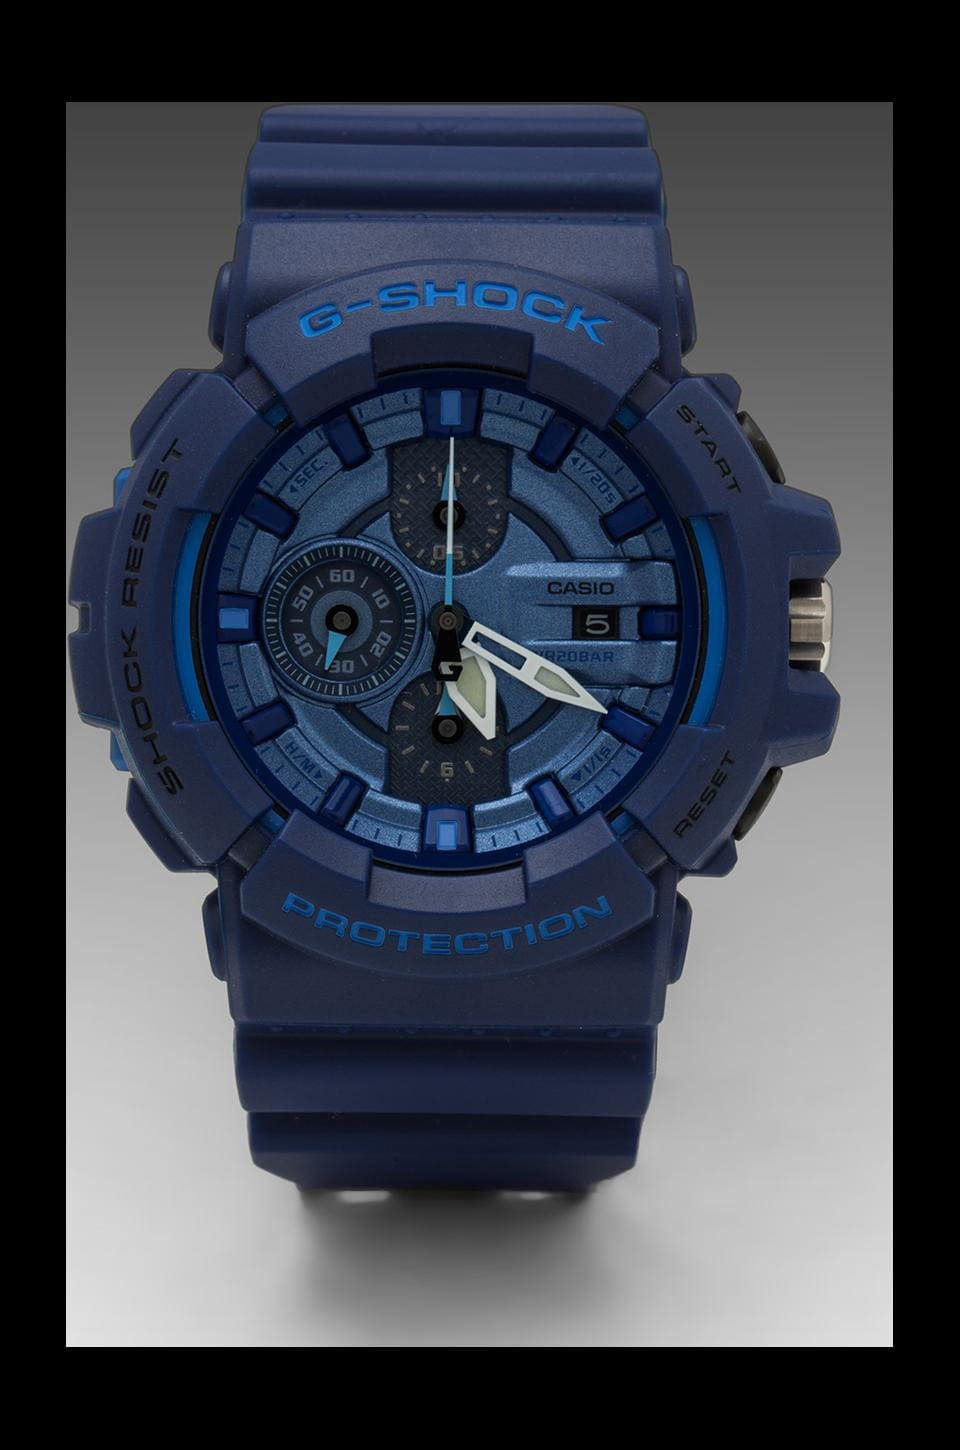 G-Shock GAC-100 in Navy Blue